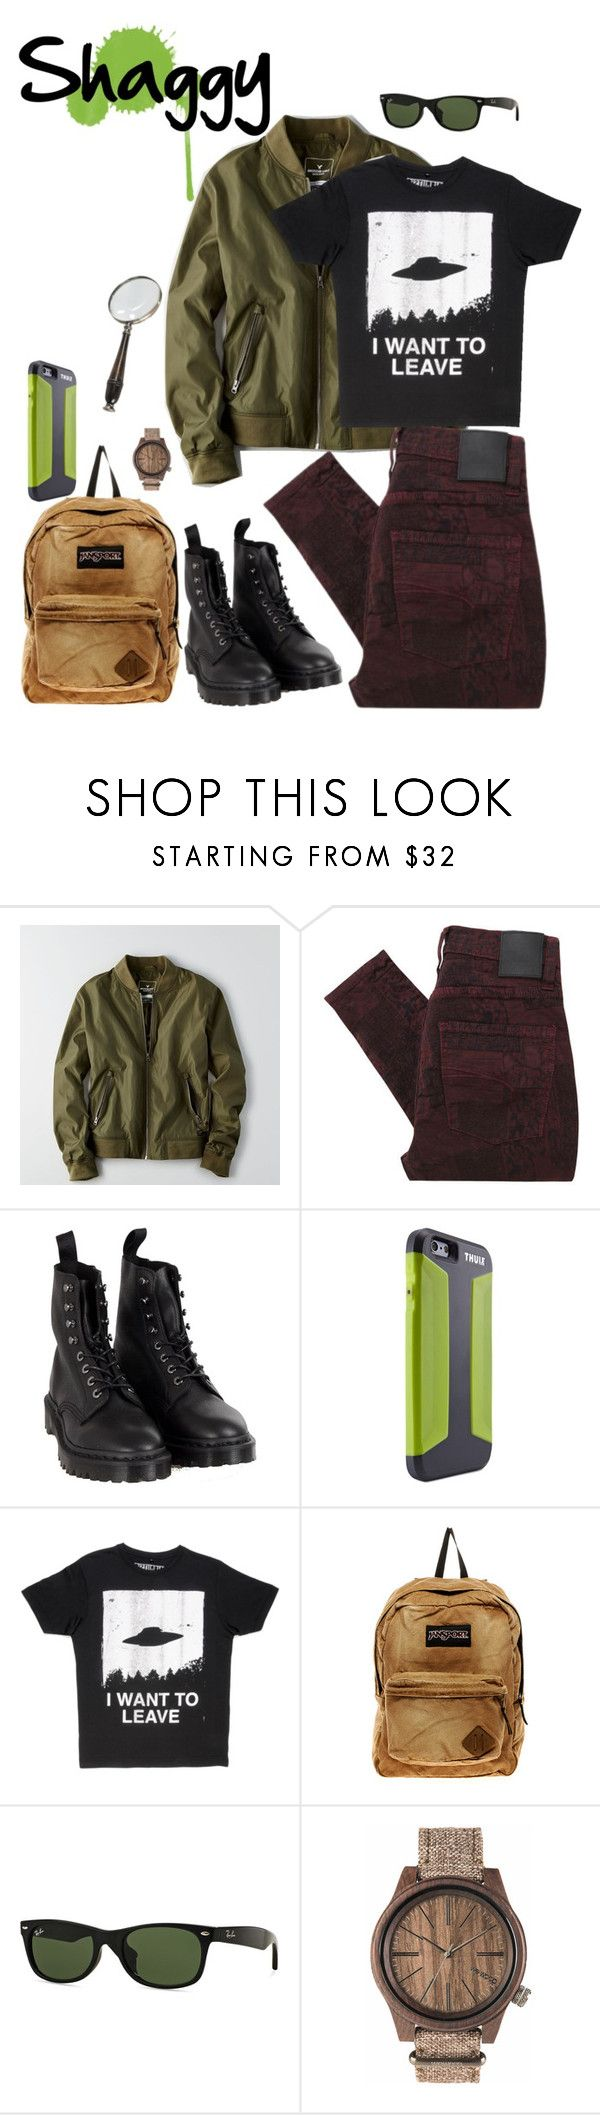 """""""Norville """"Shaggy"""" Rogers pt.1"""" by krhymell ❤ liked on Polyvore featuring American Eagle Outfitters, Nobody Denim, Dr. Martens, Thule, JanSport, Ray-Ban, Authentic Models, men's fashion and menswear"""